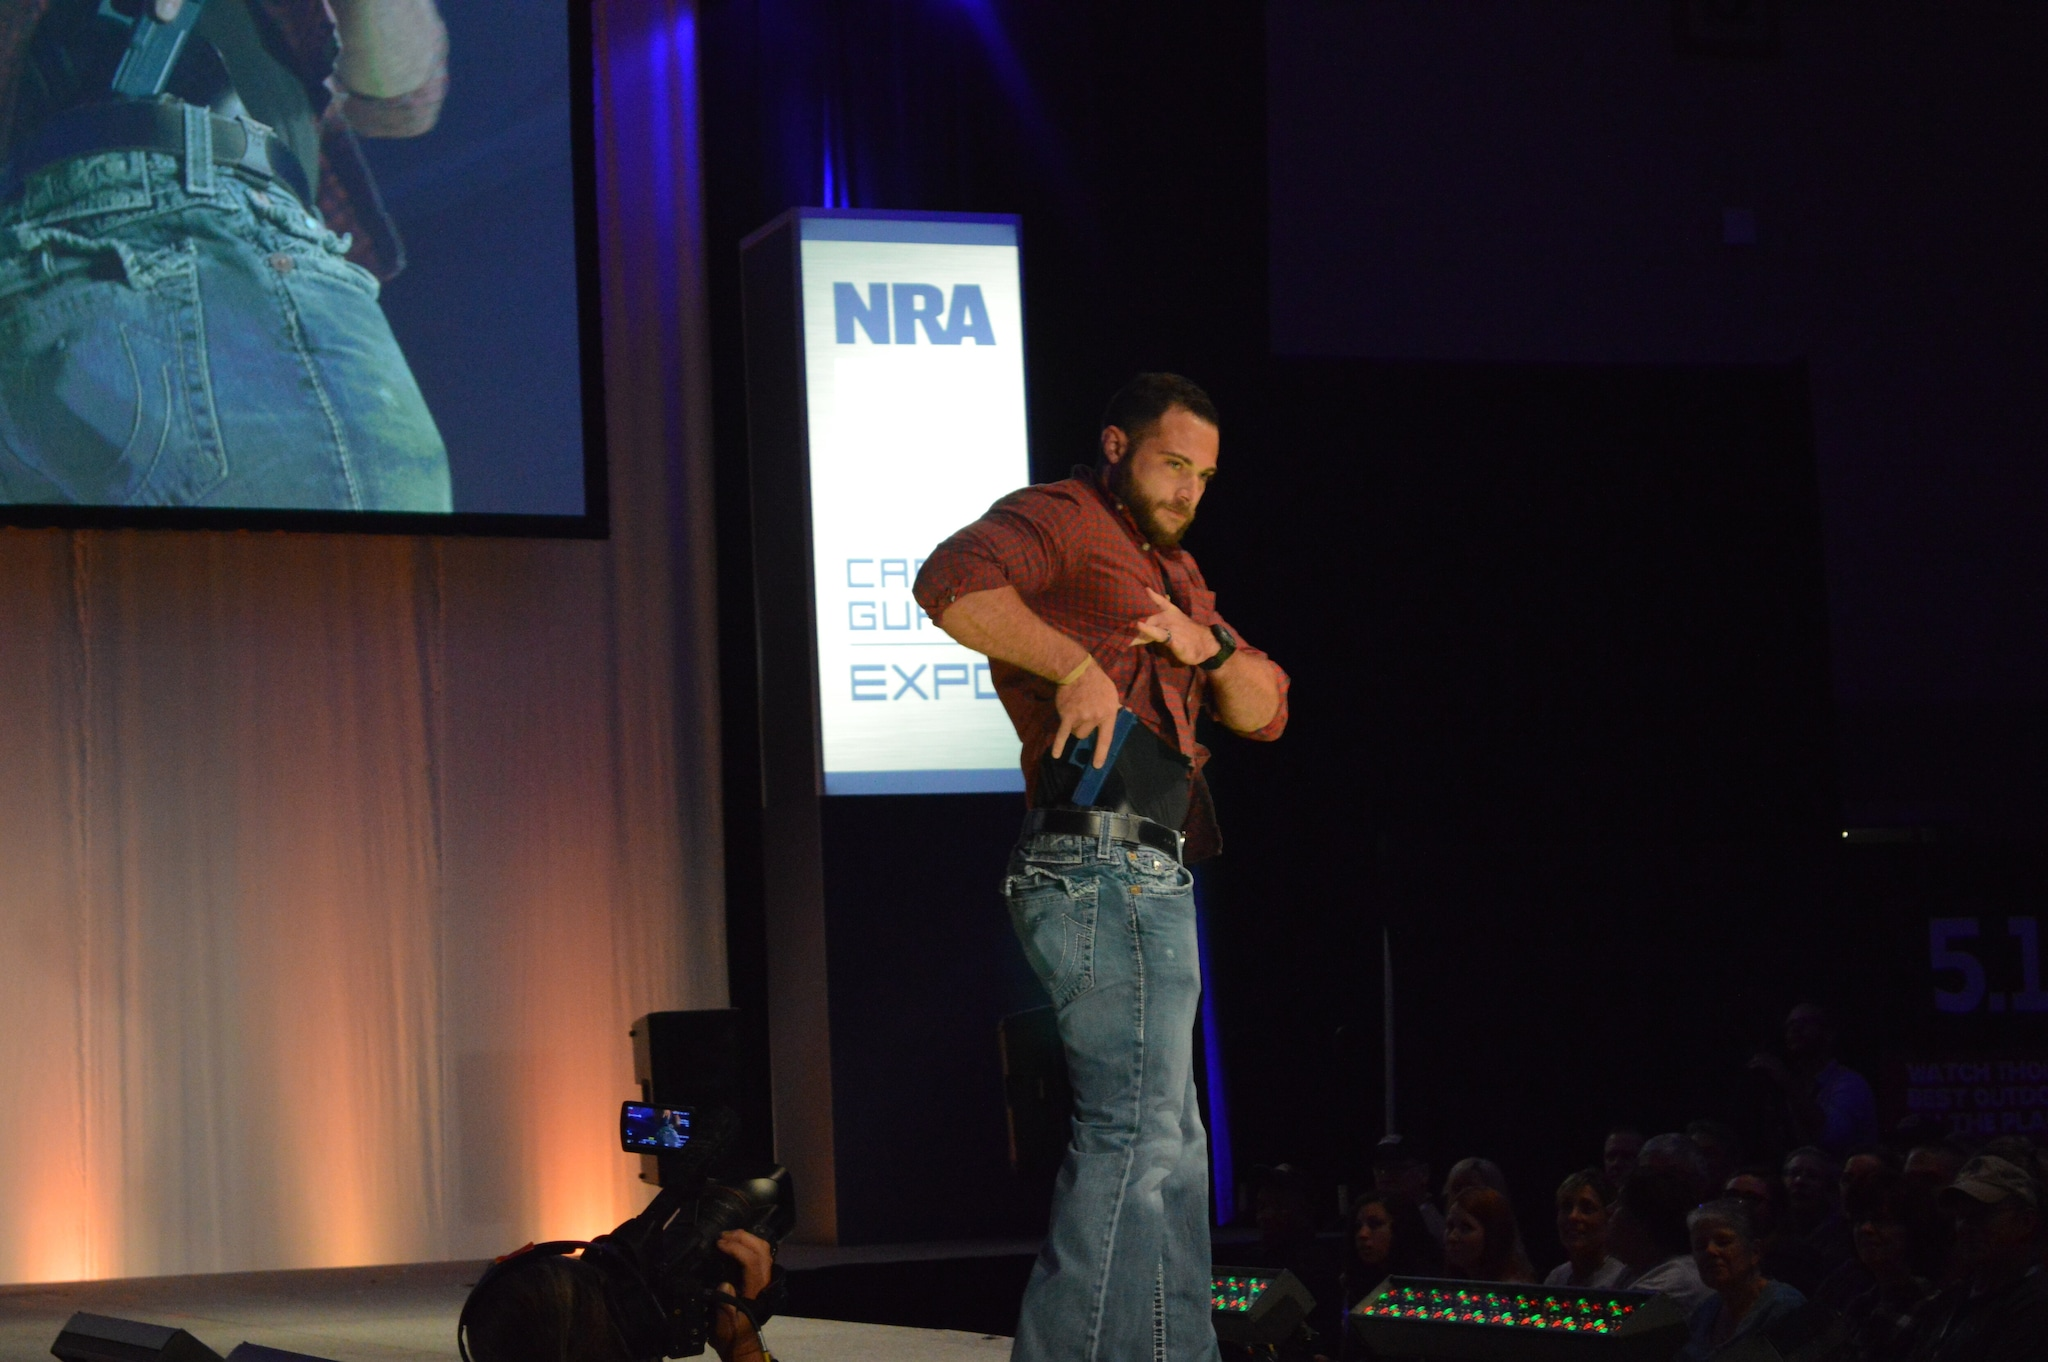 Fashion shows are not just for women, as plenty of gentlemen showed their runway prowess. Here is a nice IWB solution from CrossBreed Holsters. (Photo: Kristin Alberts/Guns.com)